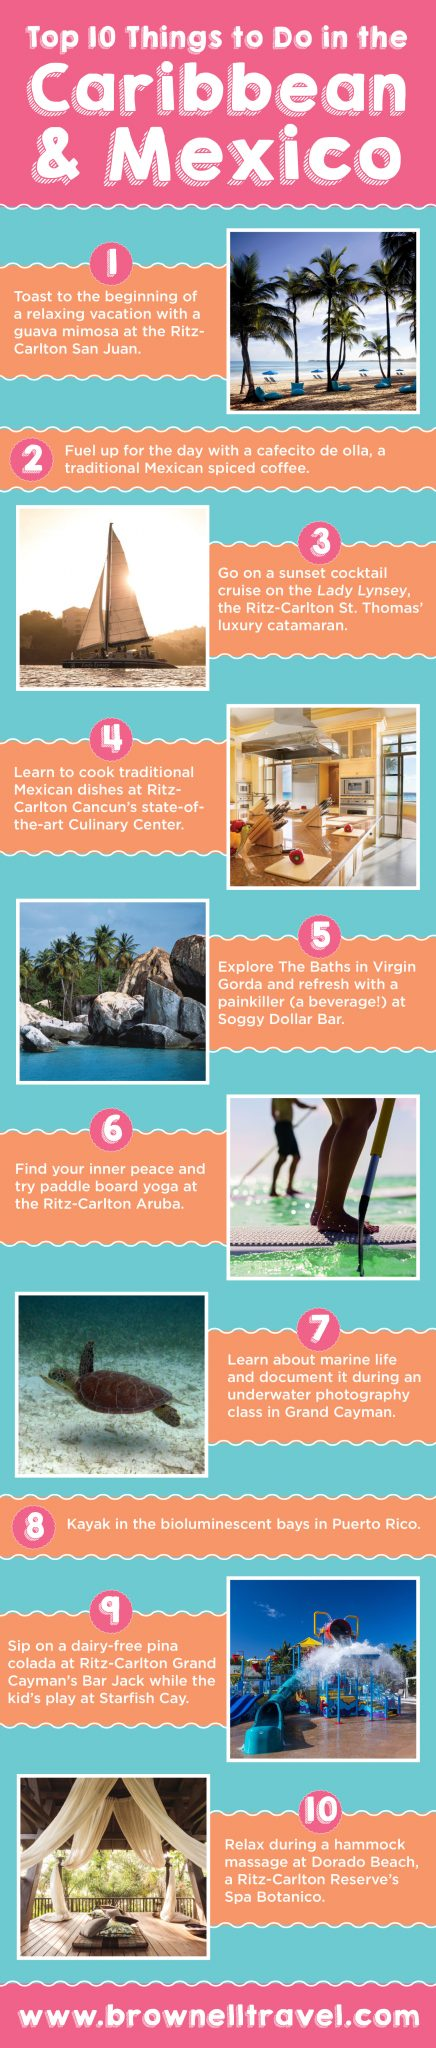 top-things-to-do-in-caribbean